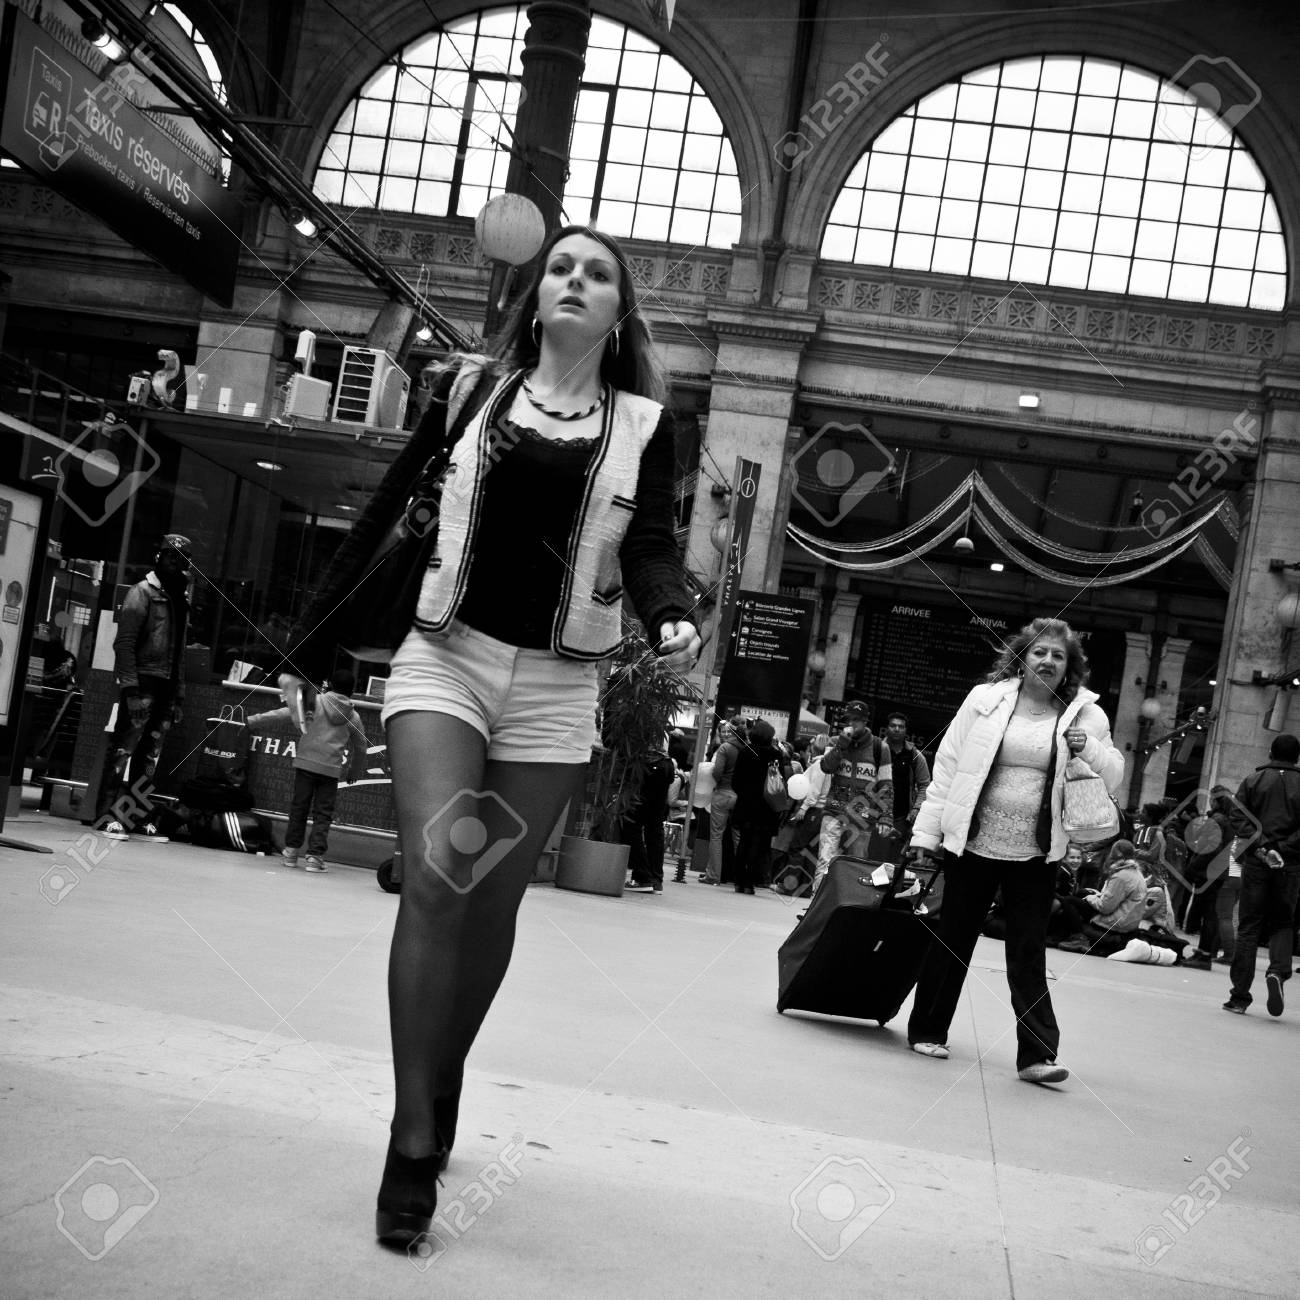 Paris france 27 april 2013 woman at gare du nord in paris stock